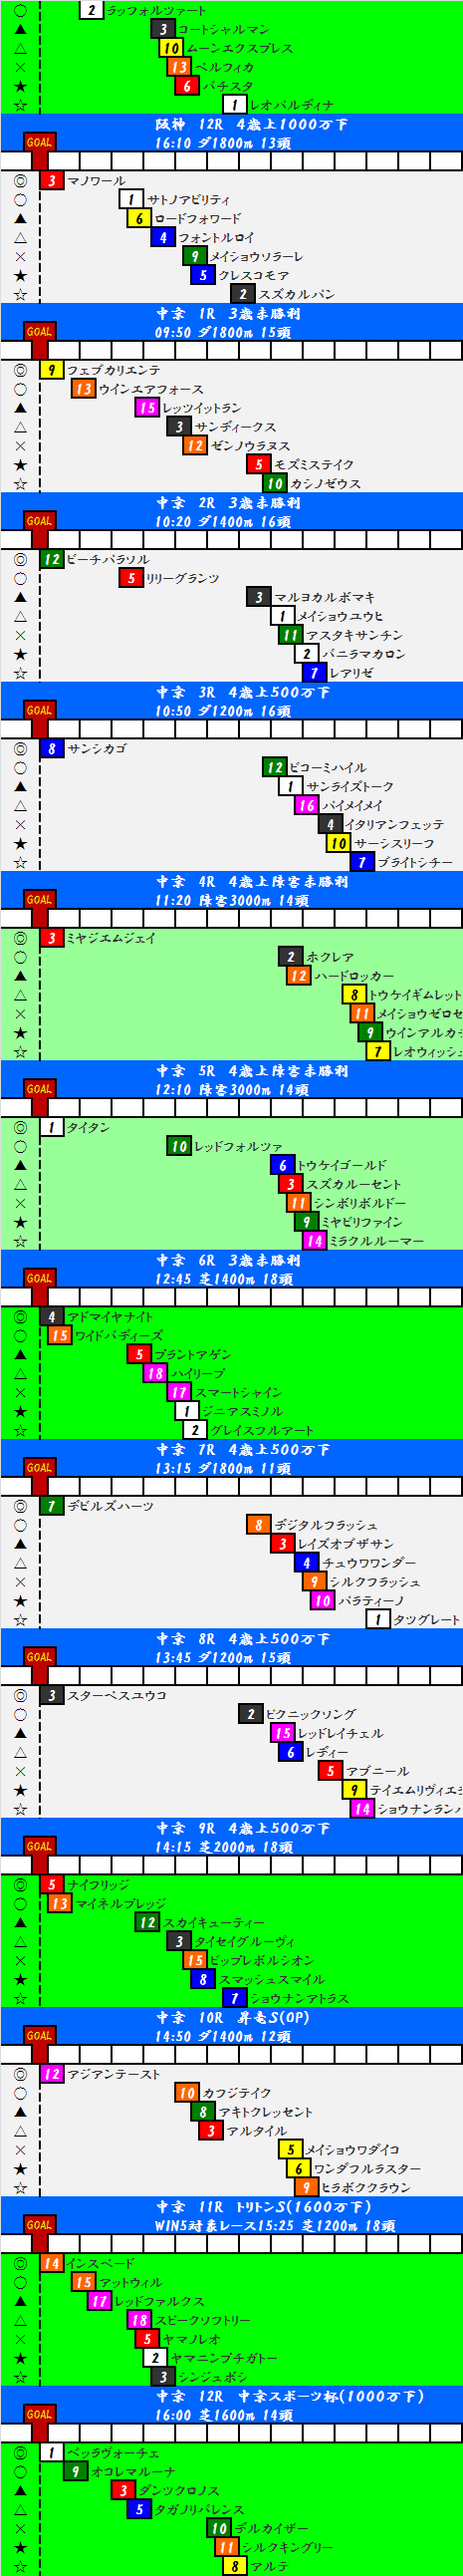 2015031502.png